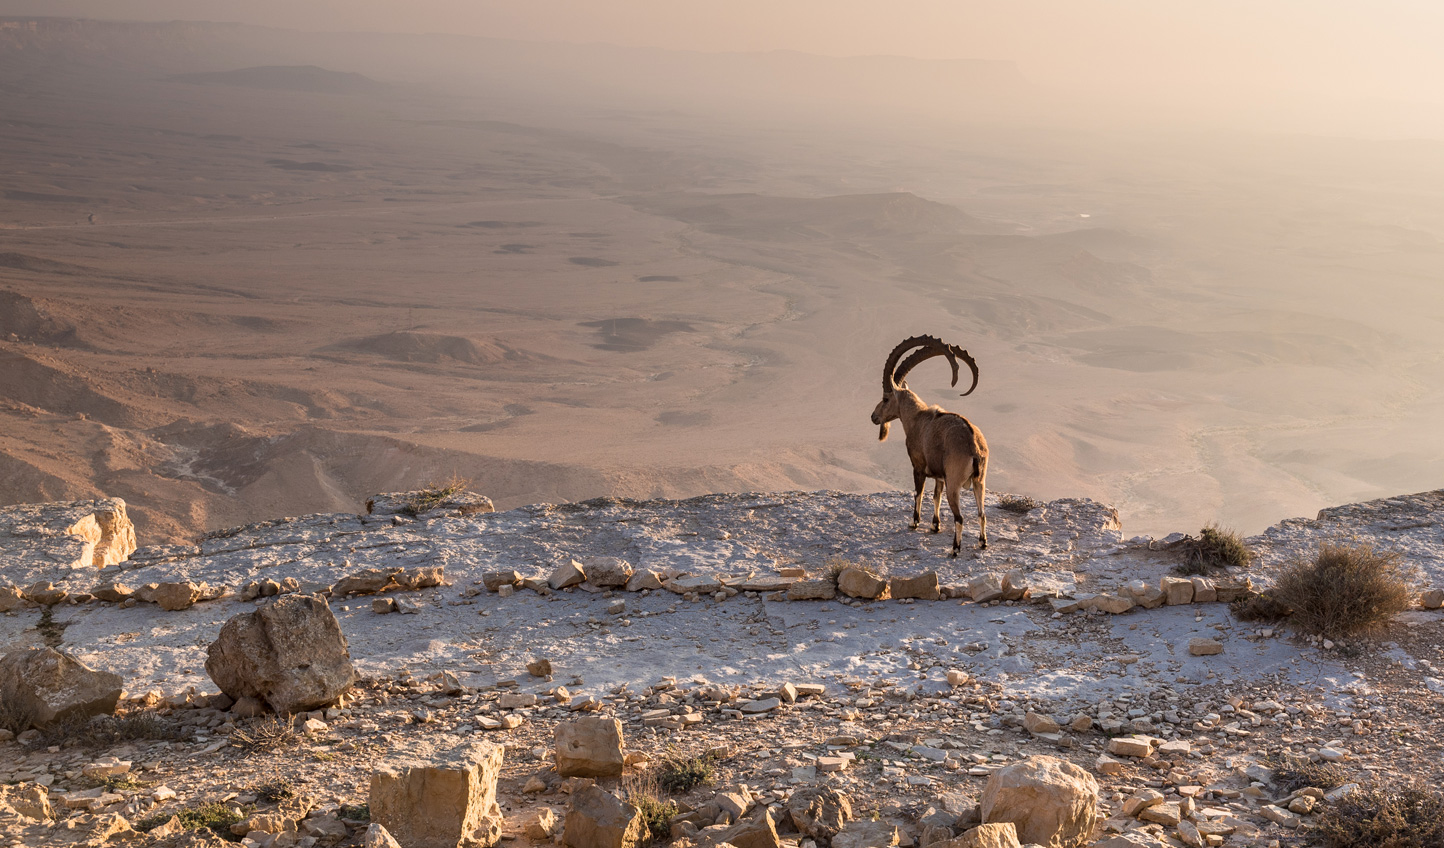 Embark on a luxury adventue through Israel taking in its historic cities, sweeping deserts and fascinating culture